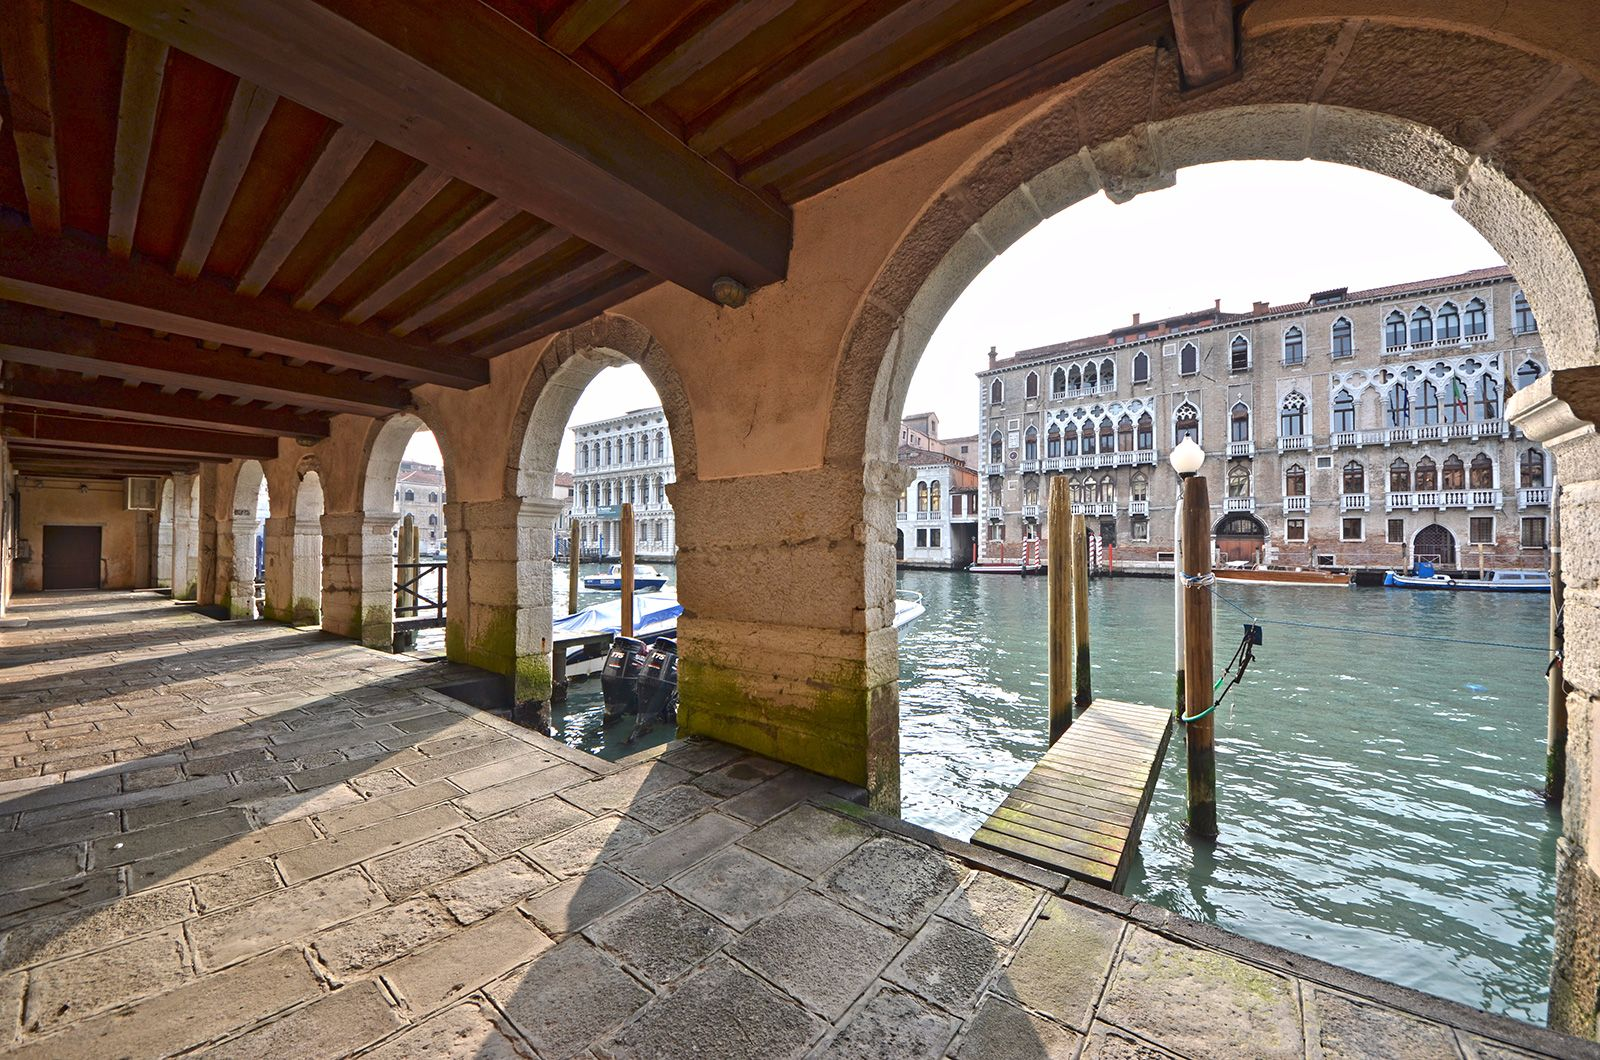 view from the porch of the Palazzo on the Grand Canal (the pier cannot be used!)